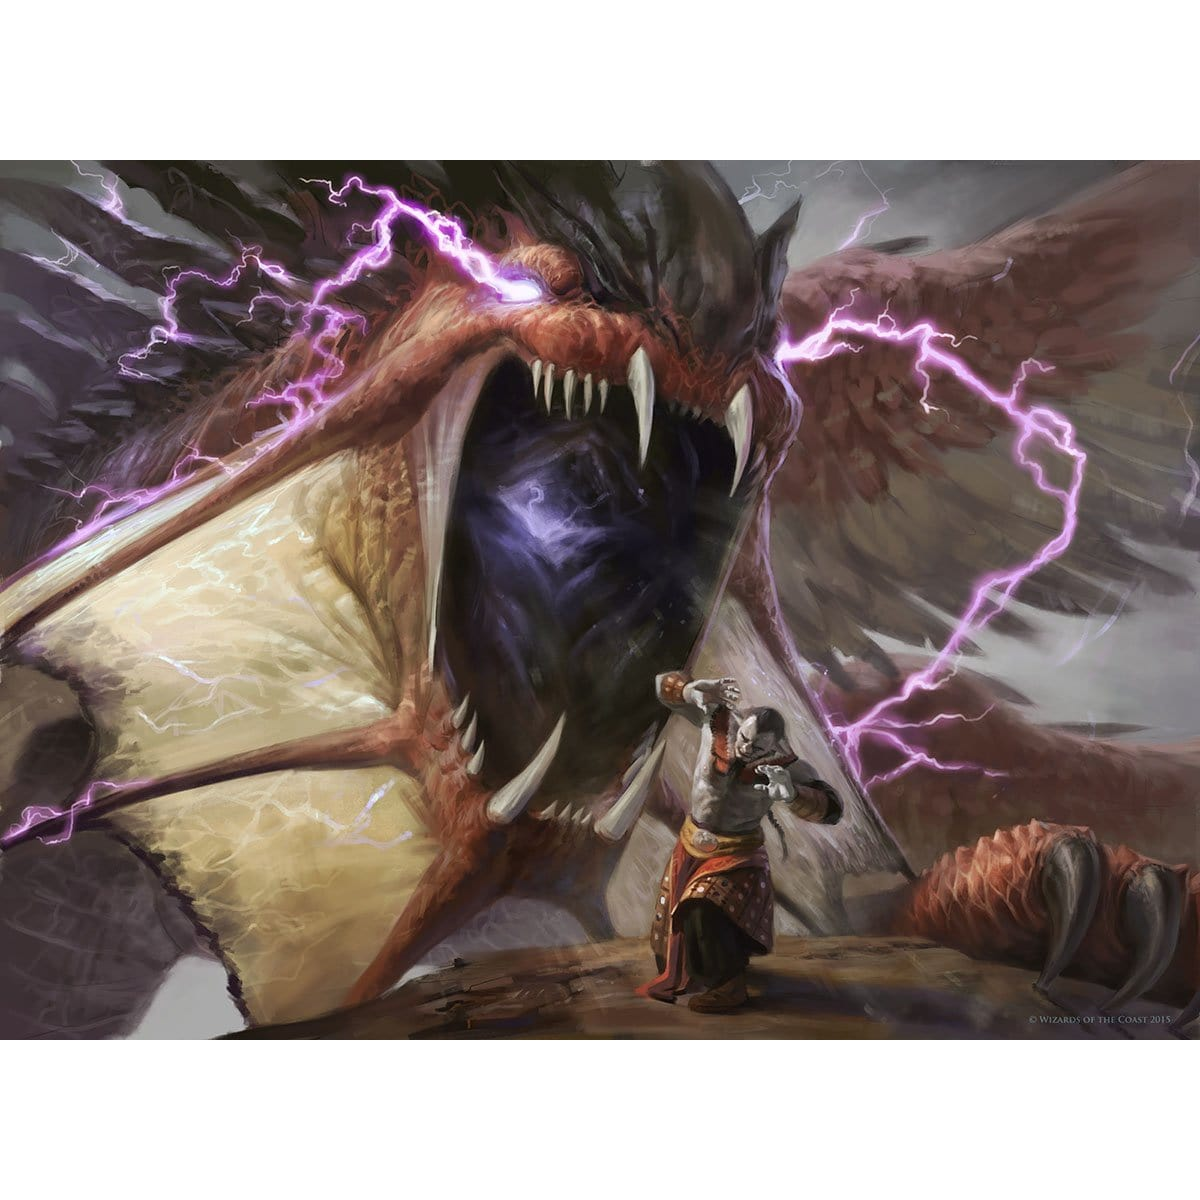 Duress Print - Print - Original Magic Art - Accessories for Magic the Gathering and other card games